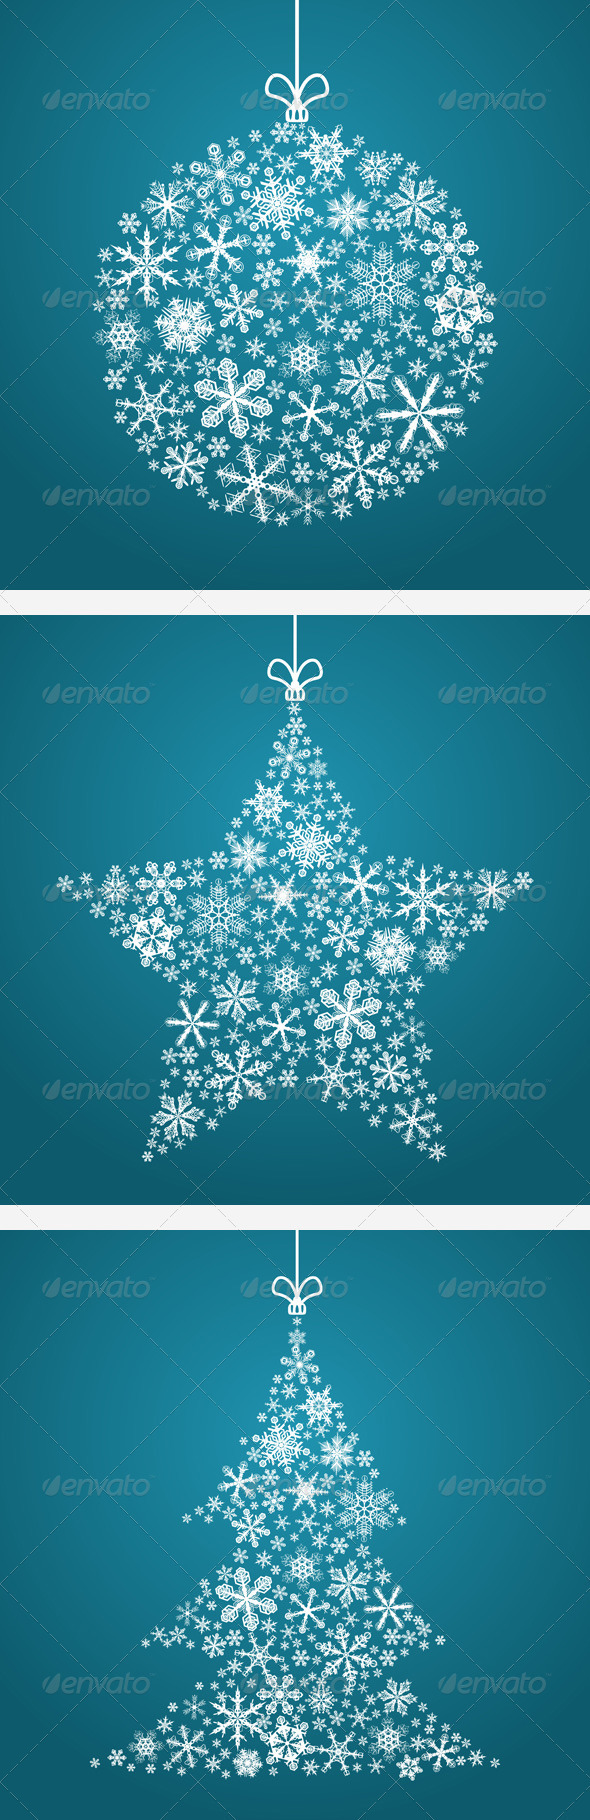 GraphicRiver 3 Christmas Backgrounds 3364939